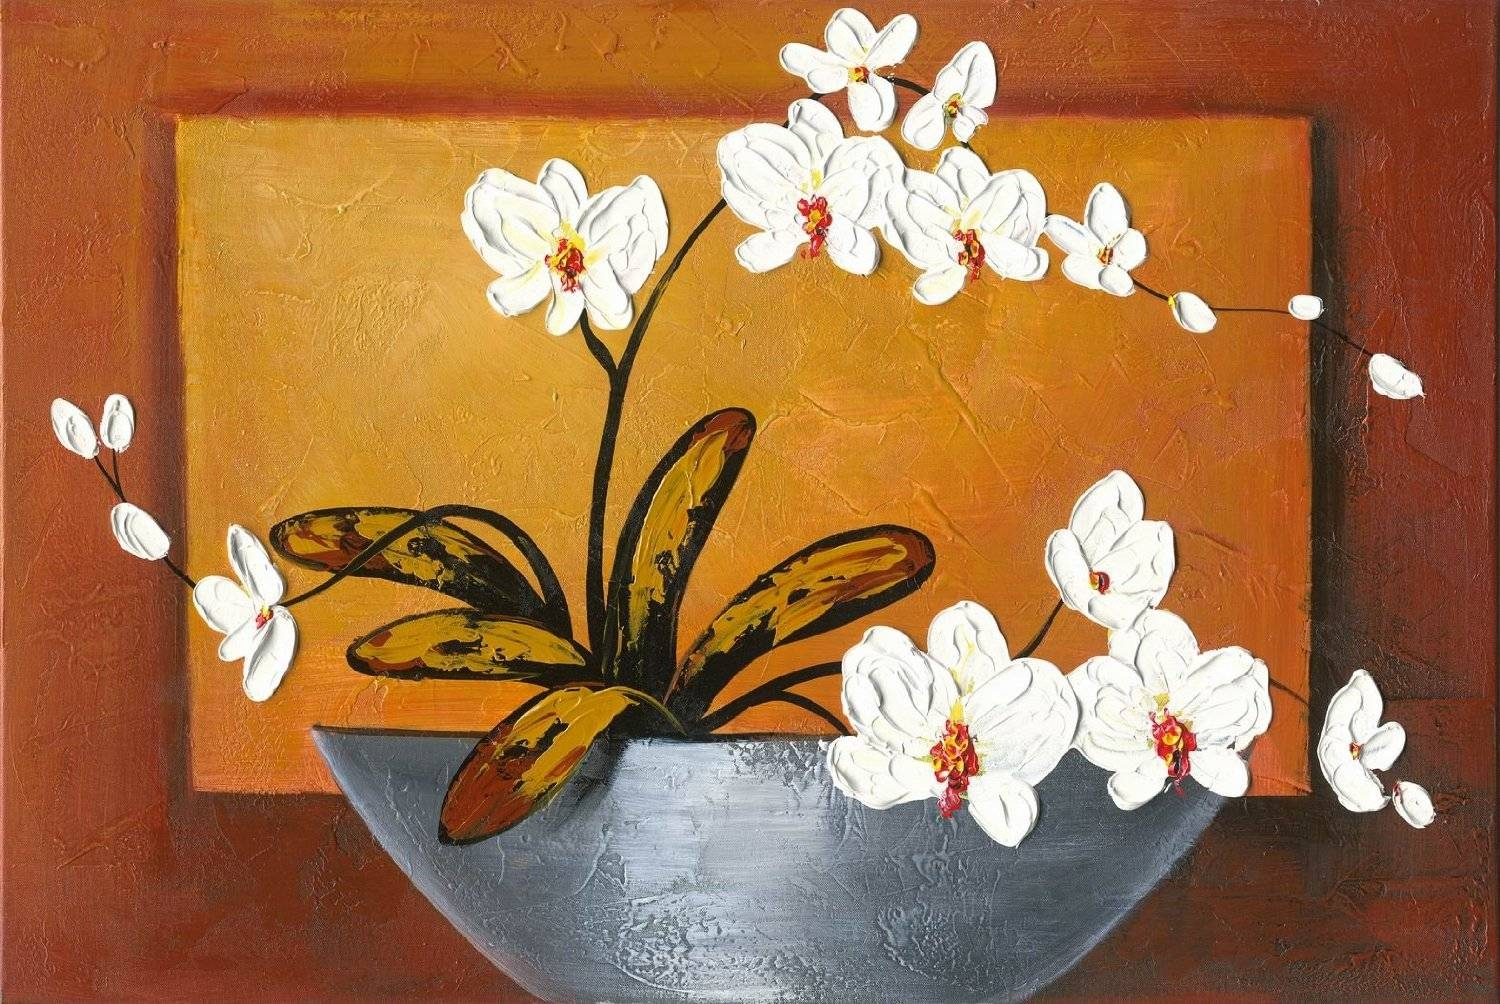 Orchid Modern Canvas Art Wall Decor Floral Oil Painting Wall Art Inside Most Recently Released Oil Painting Wall Art On Canvas (View 18 of 20)